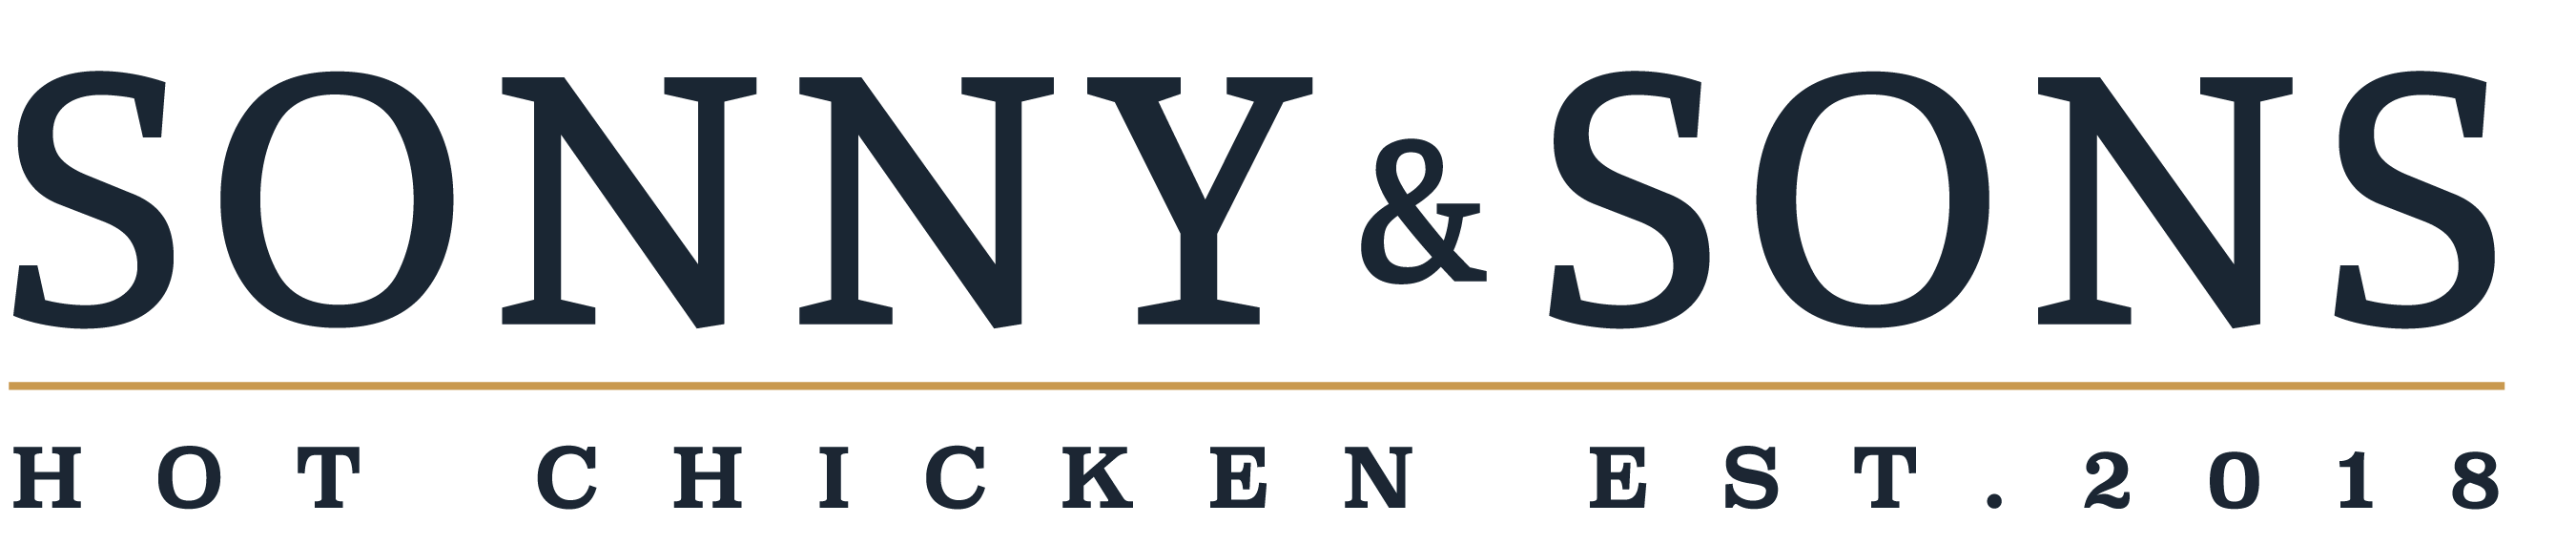 sonny and sons logo